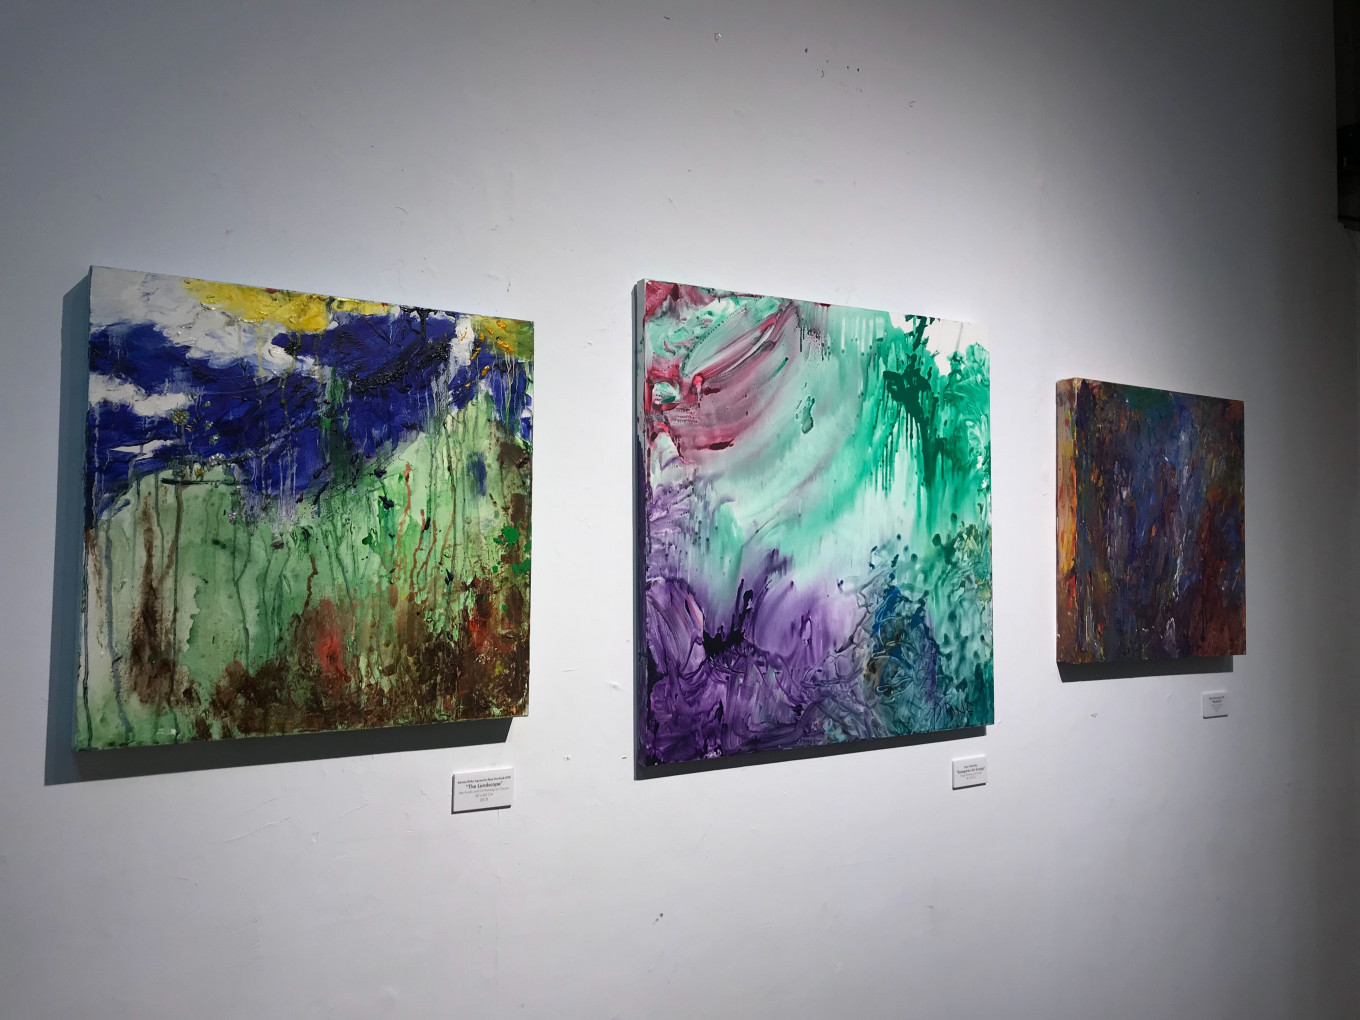 'Colors of My World' exhibition features work of painters with autism